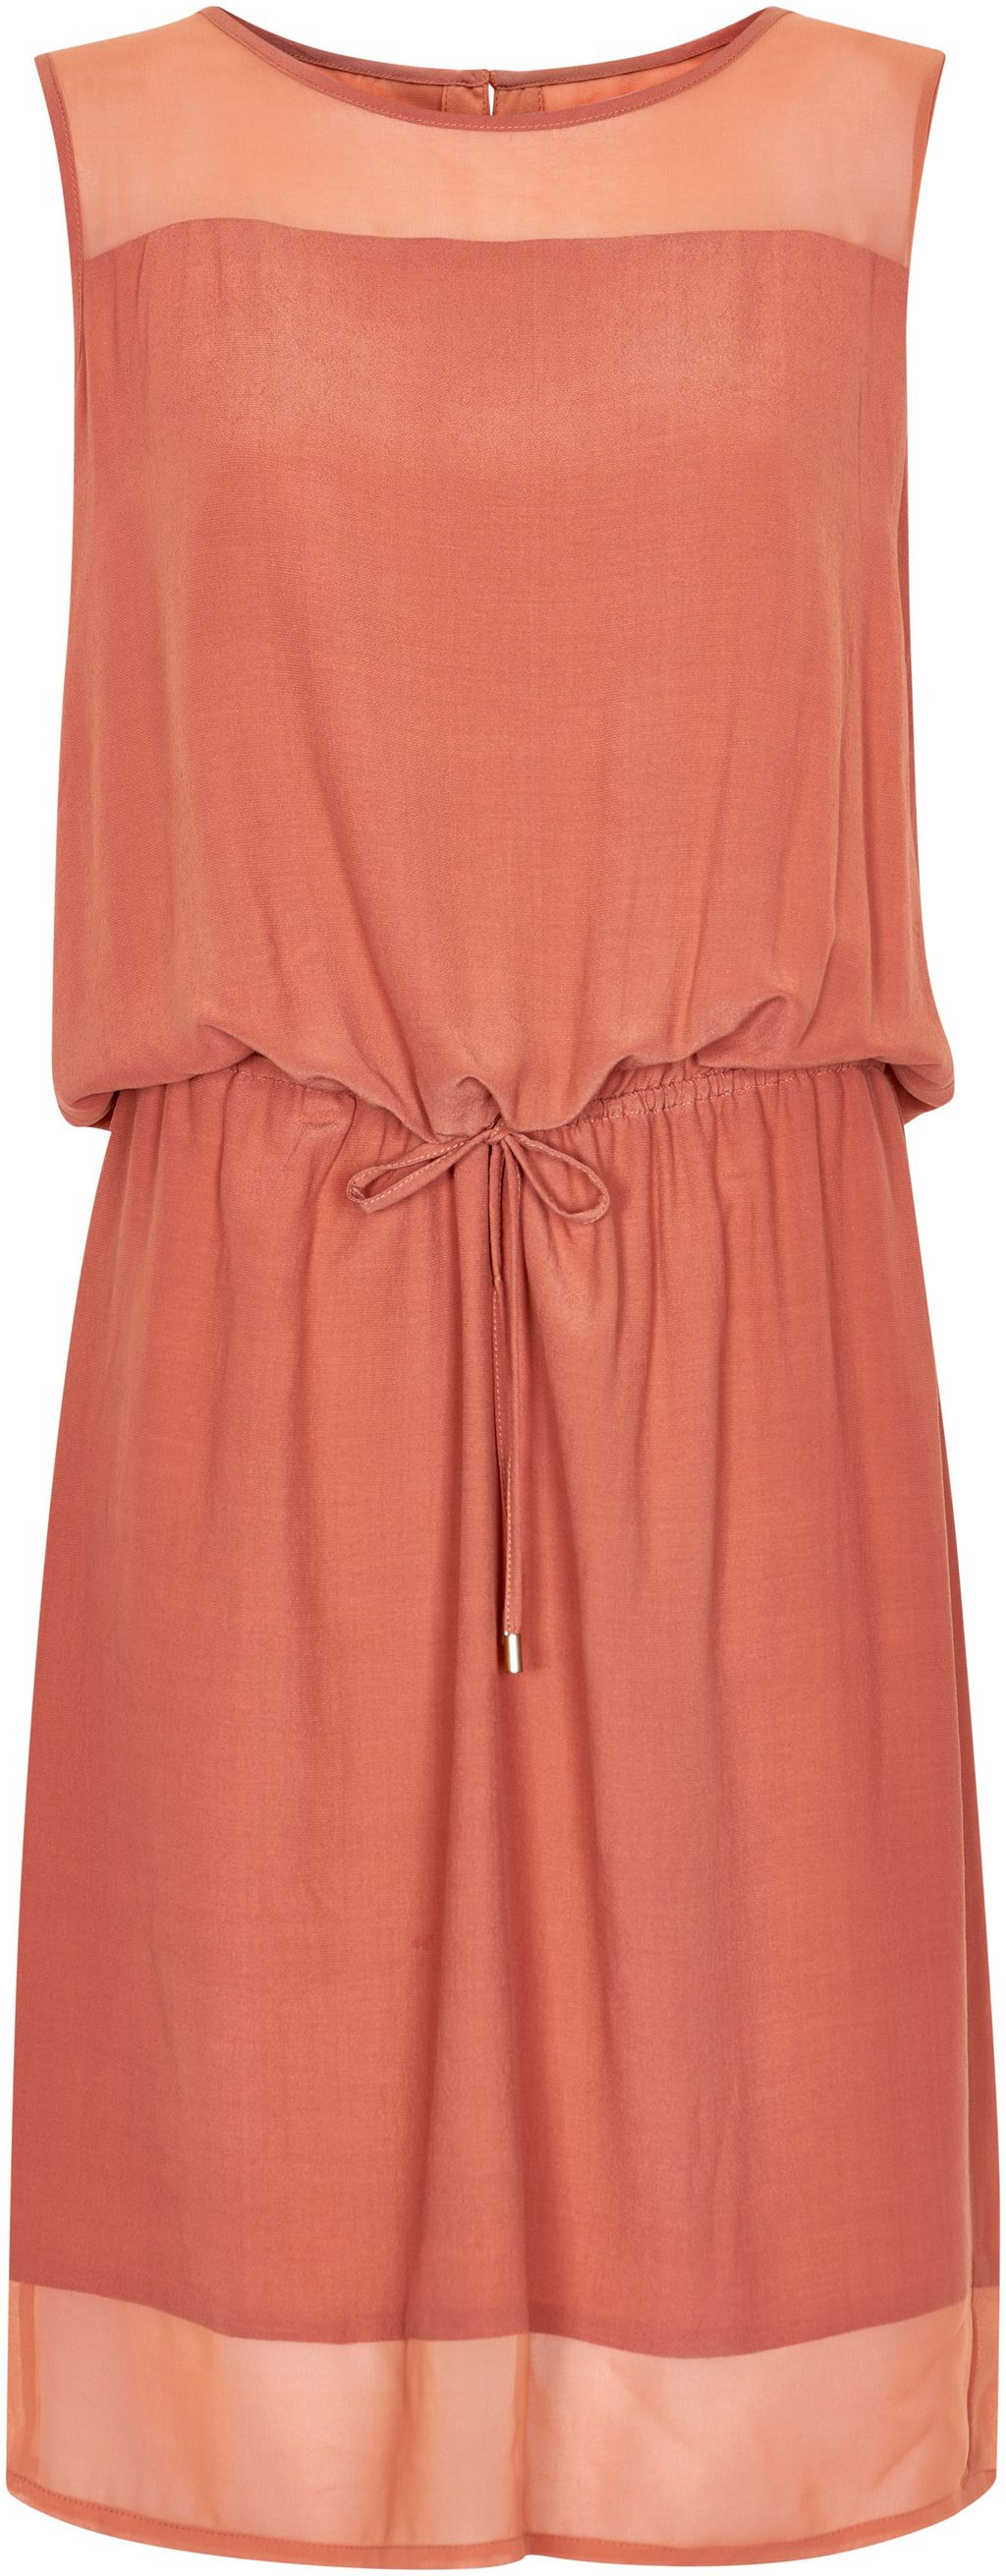 Dress With Drawstring Waist, Pink - style: shift; pattern: plain; sleeve style: sleeveless; waist detail: belted waist/tie at waist/drawstring; occasions: casual; length: just above the knee; fit: body skimming; fibres: viscose/rayon - 100%; neckline: crew; sleeve length: sleeveless; texture group: sheer fabrics/chiffon/organza etc.; pattern type: fabric; predominant colour: dusky pink; season: s/s 2016; wardrobe: highlight